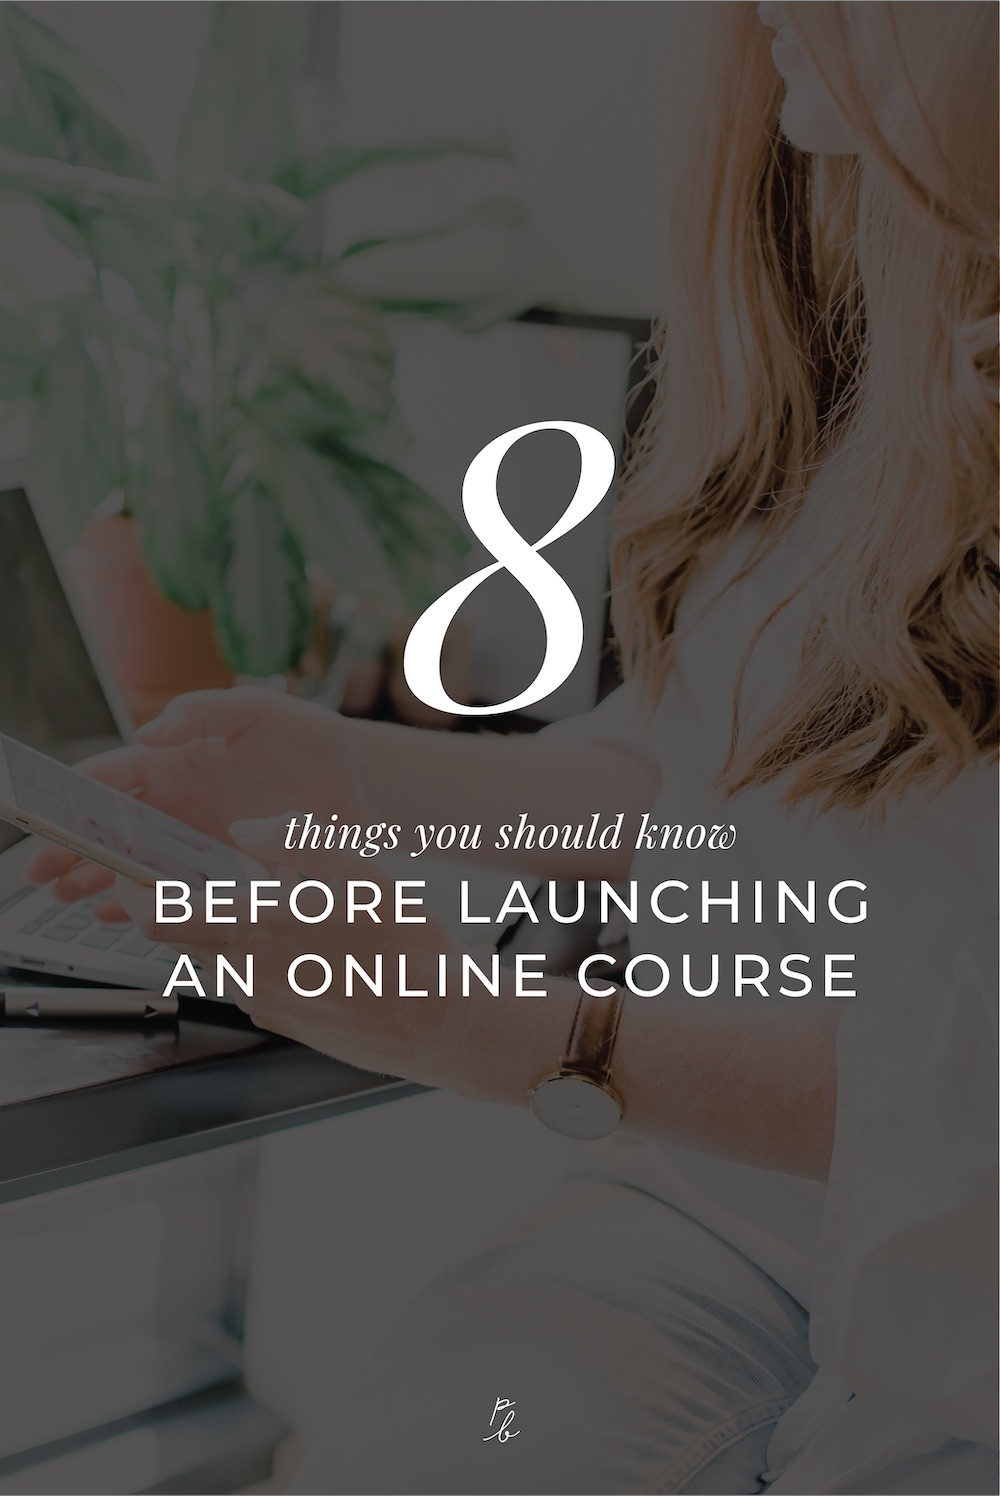 2-8 things you should know before launching an online course.jpg